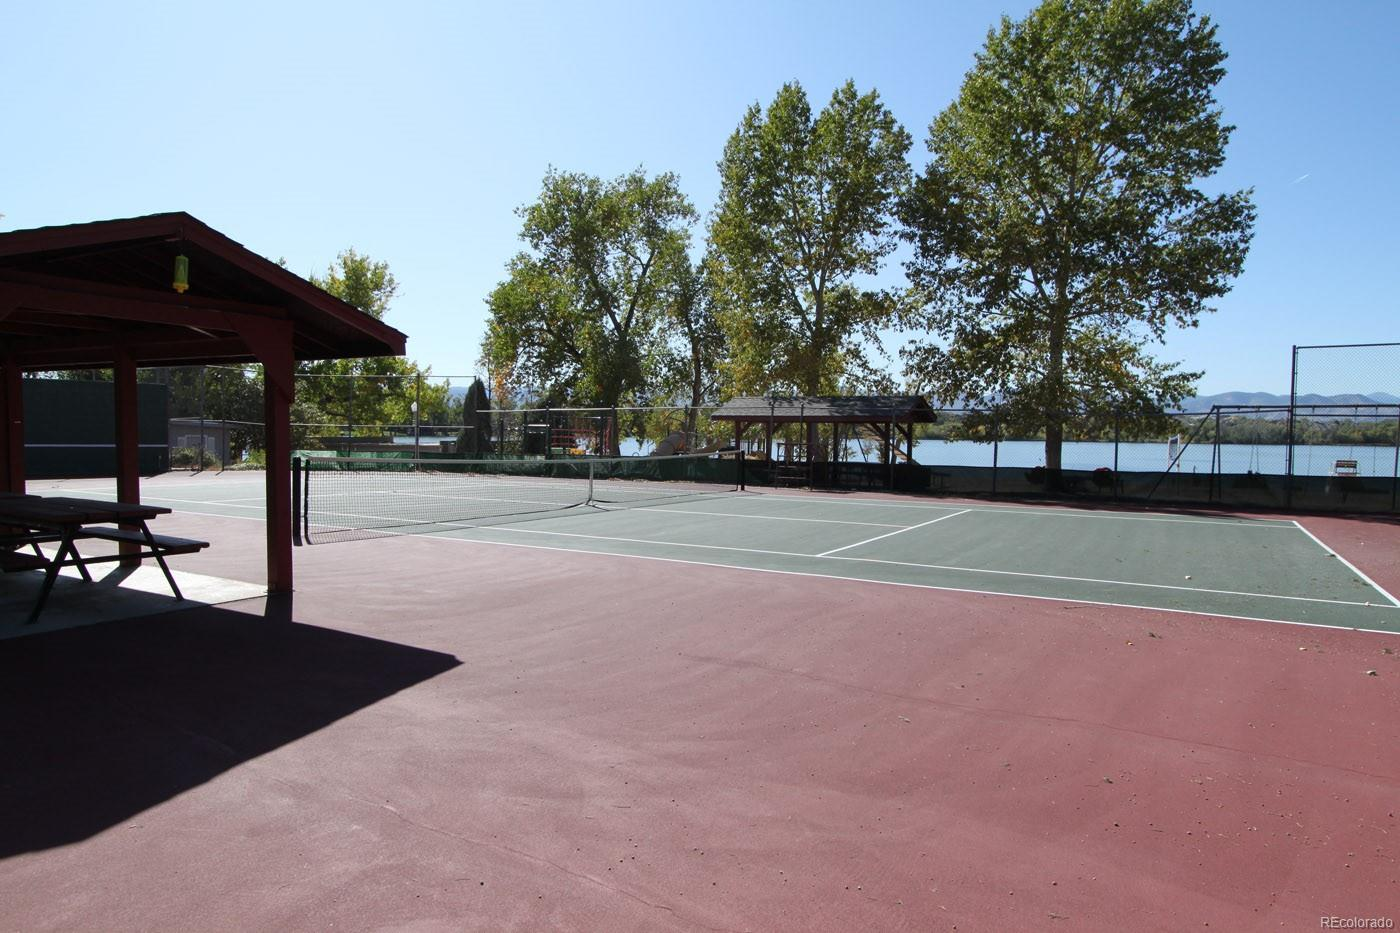 Tennis Courts Galore - 4 at Beach & 4 at Marston